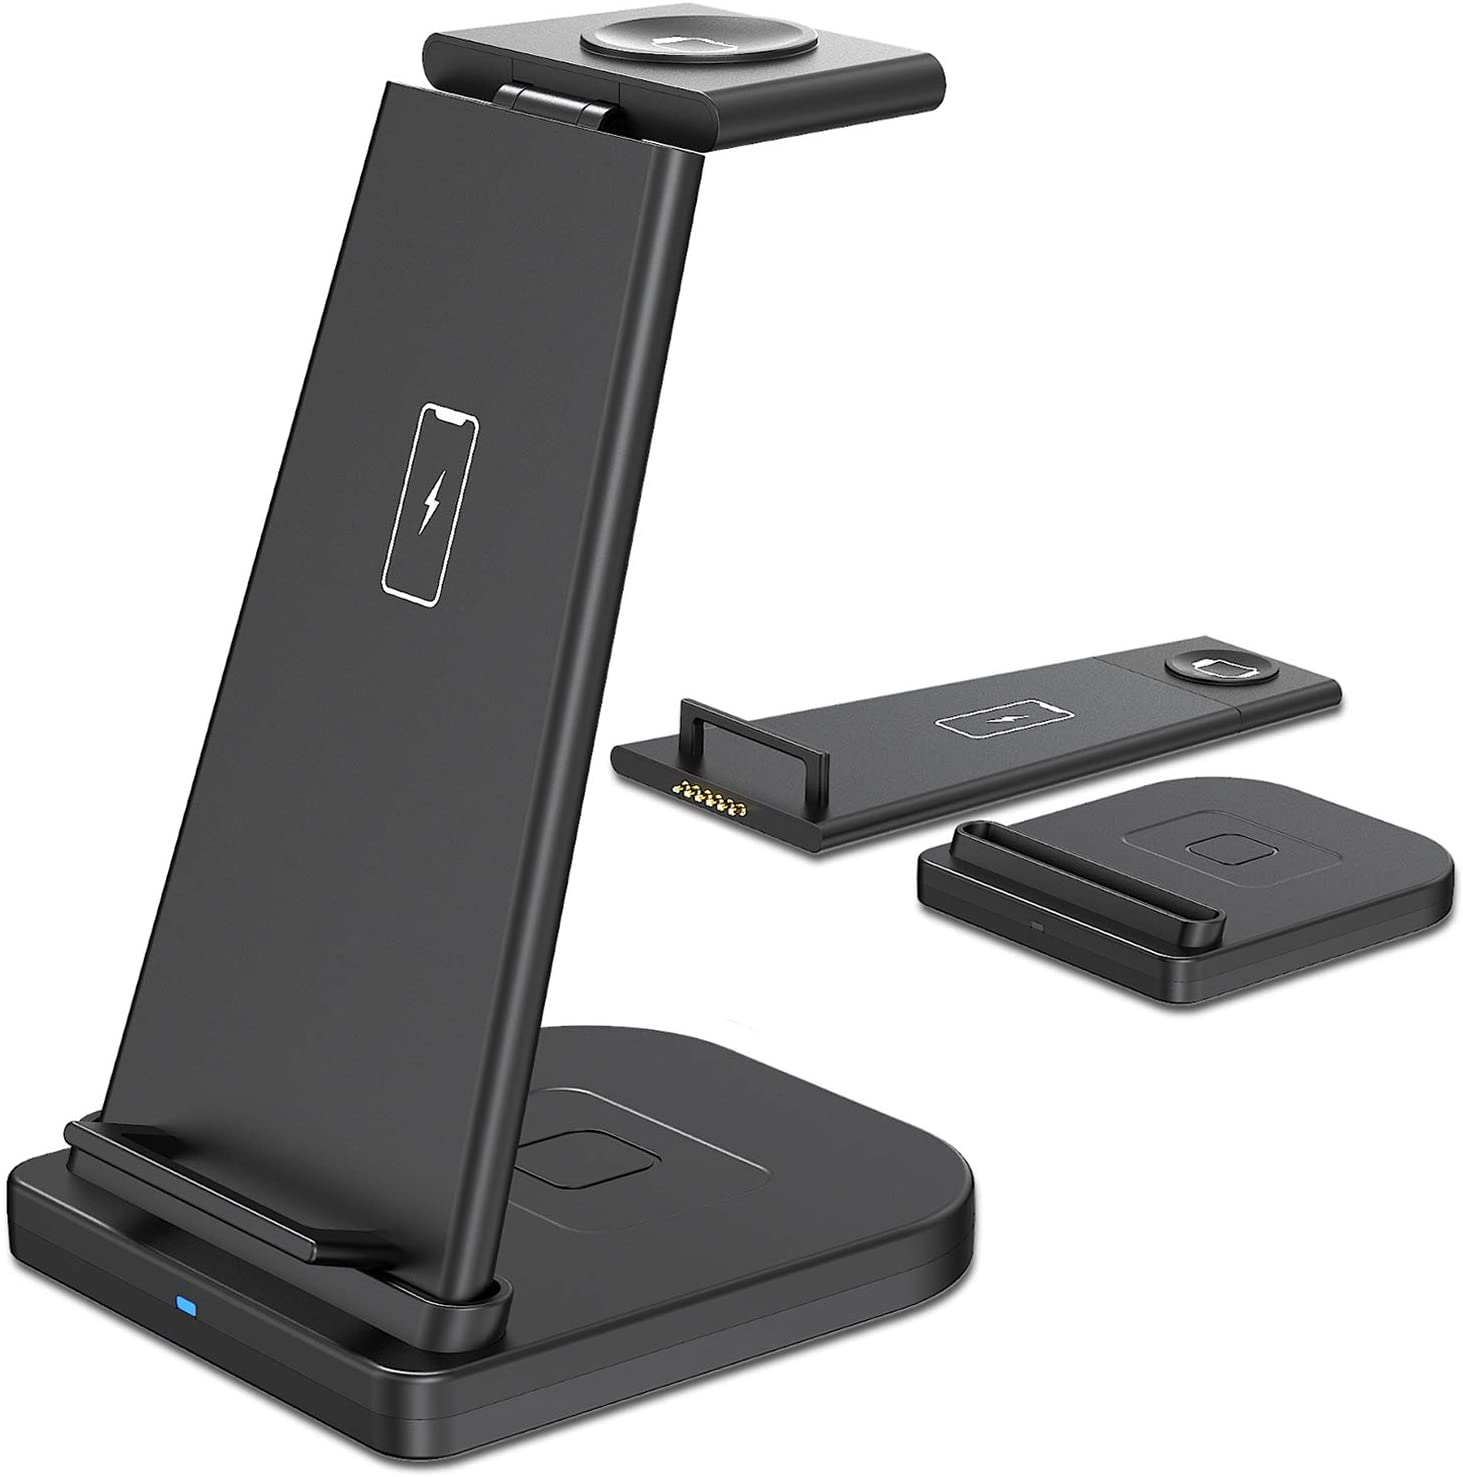 Wireless Charging Station, Hargedis 3 in 1 Fast Wireless Charger Stand, Qi-Certified Wireless Charger for iPhone 11/11 Pro Max/XR/XS Max/Xs/X/8/8P, iWatch 5/4/3/2, AirPods Pro/Airpods 2